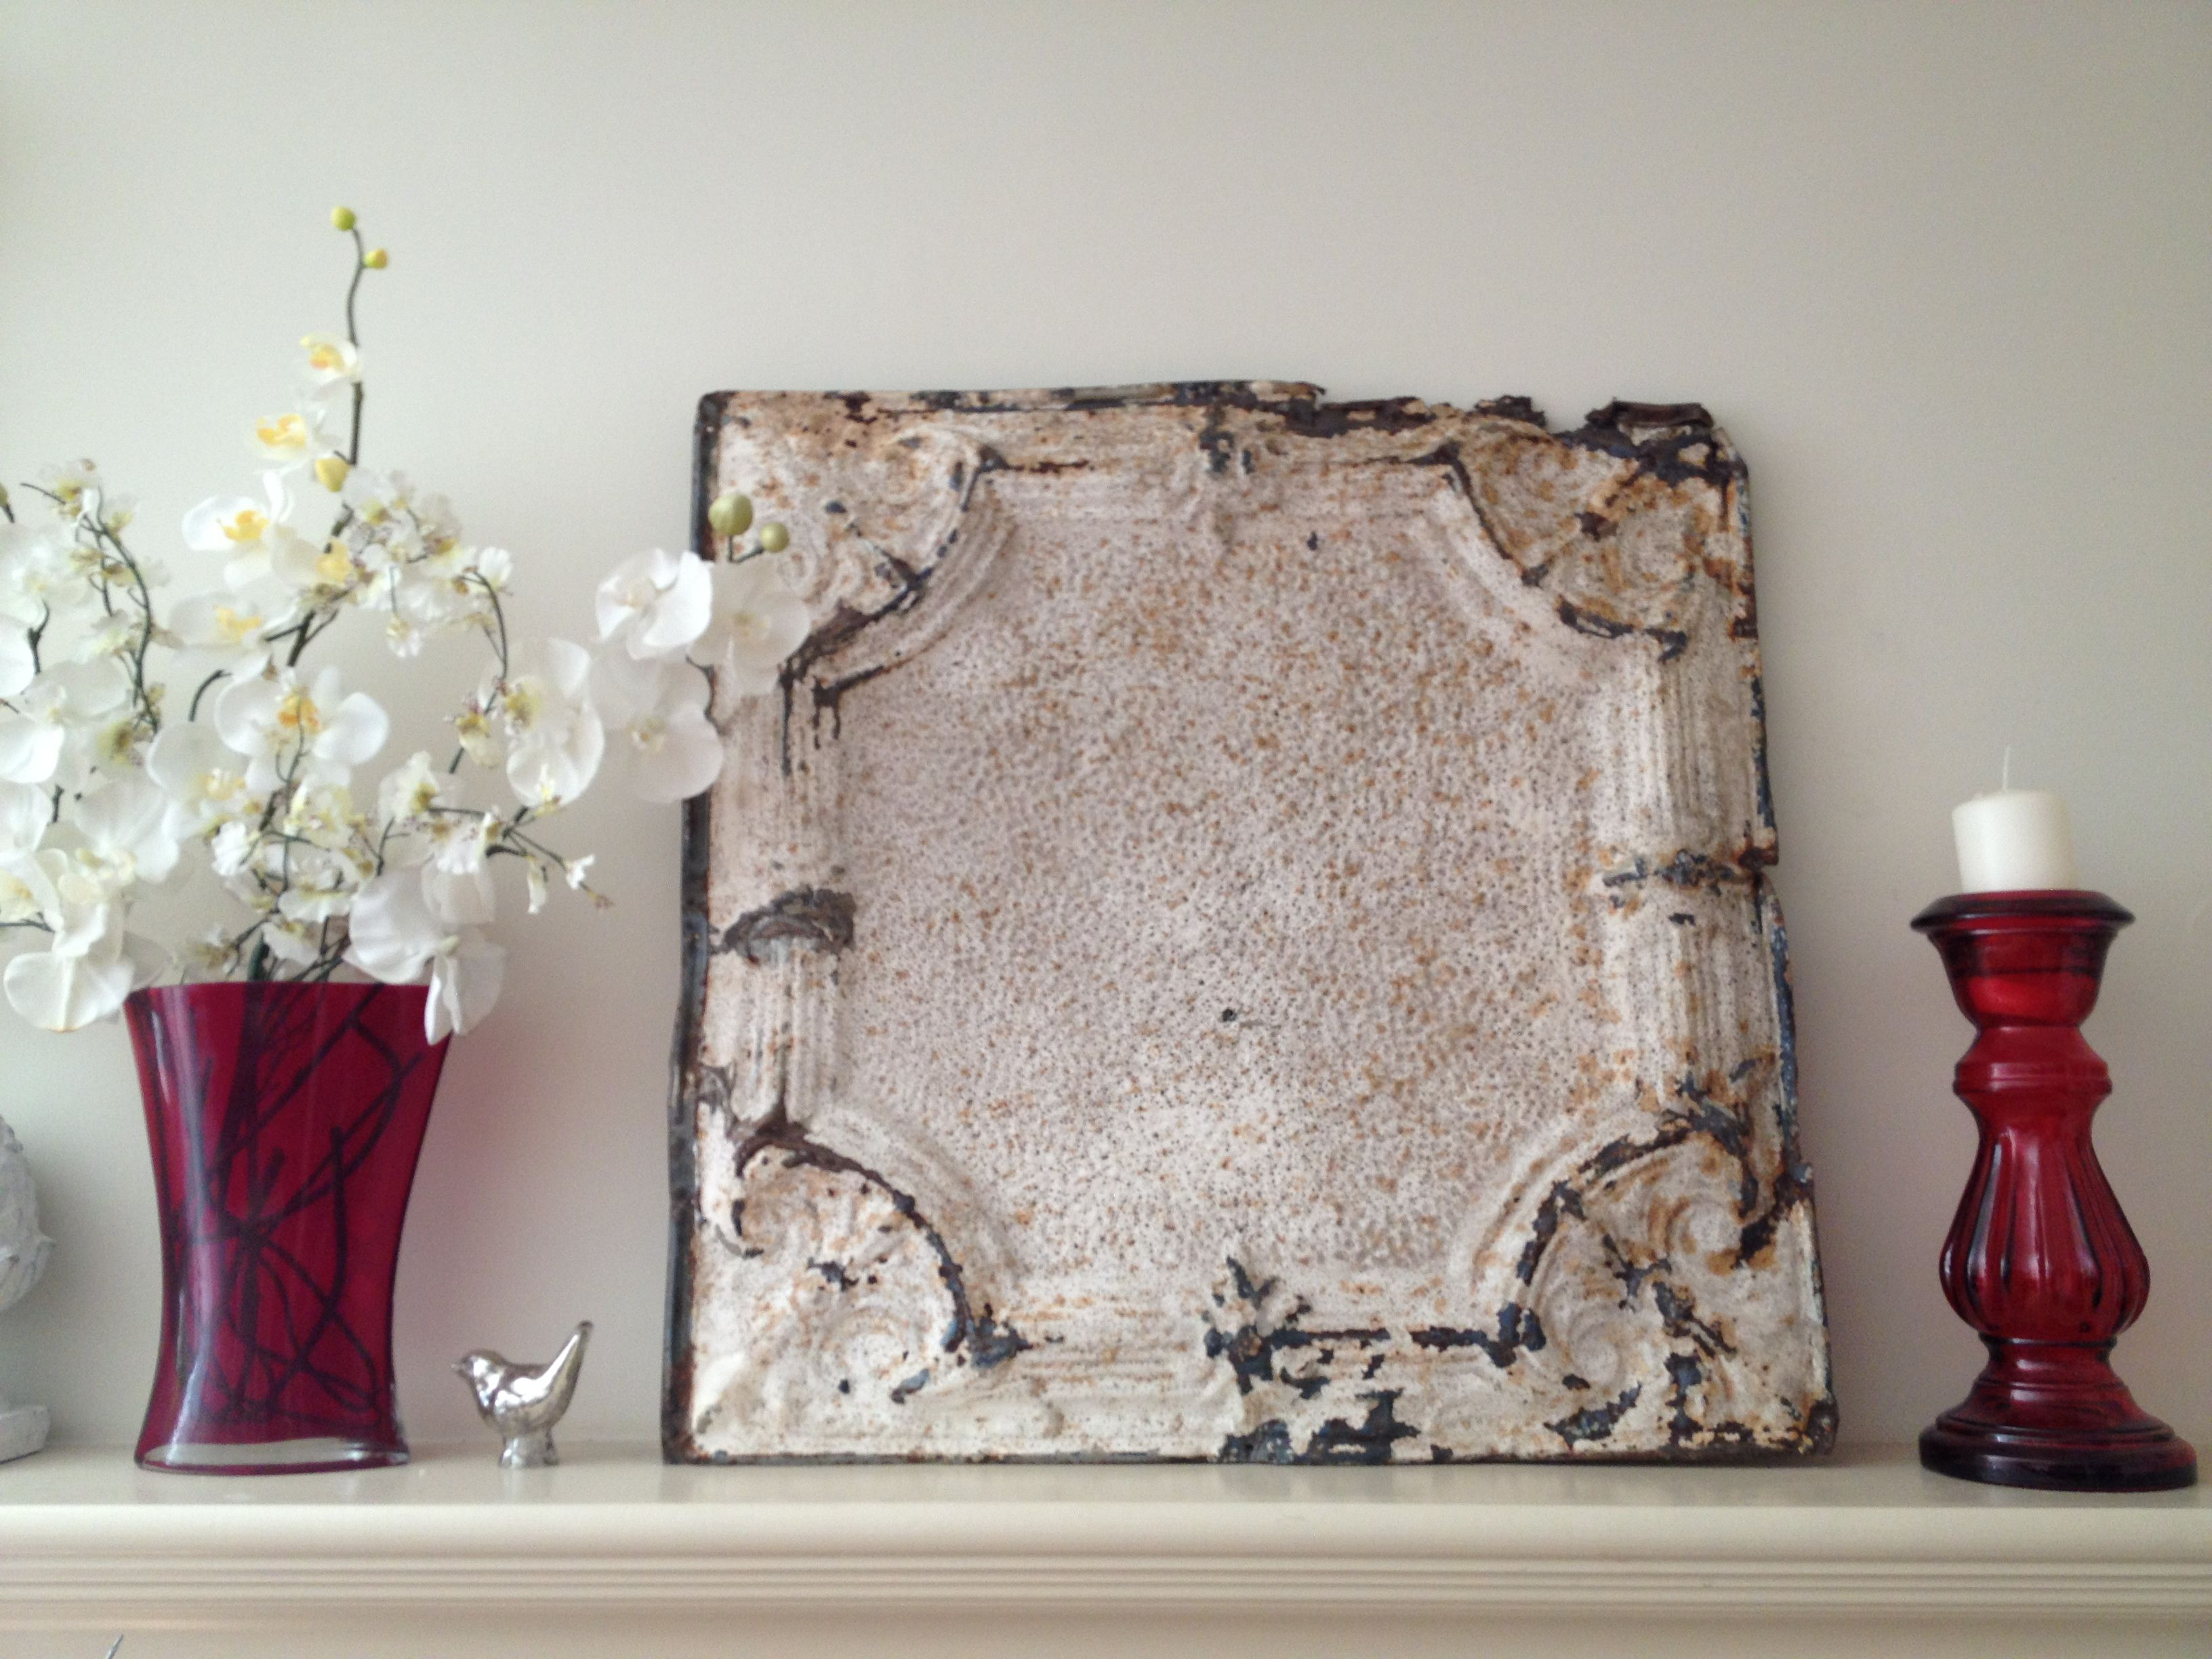 My mantle with an antique ceiling tile that i purchased from the my mantle with an antique ceiling tile that i purchased from the antique mall in agoura doublecrazyfo Choice Image